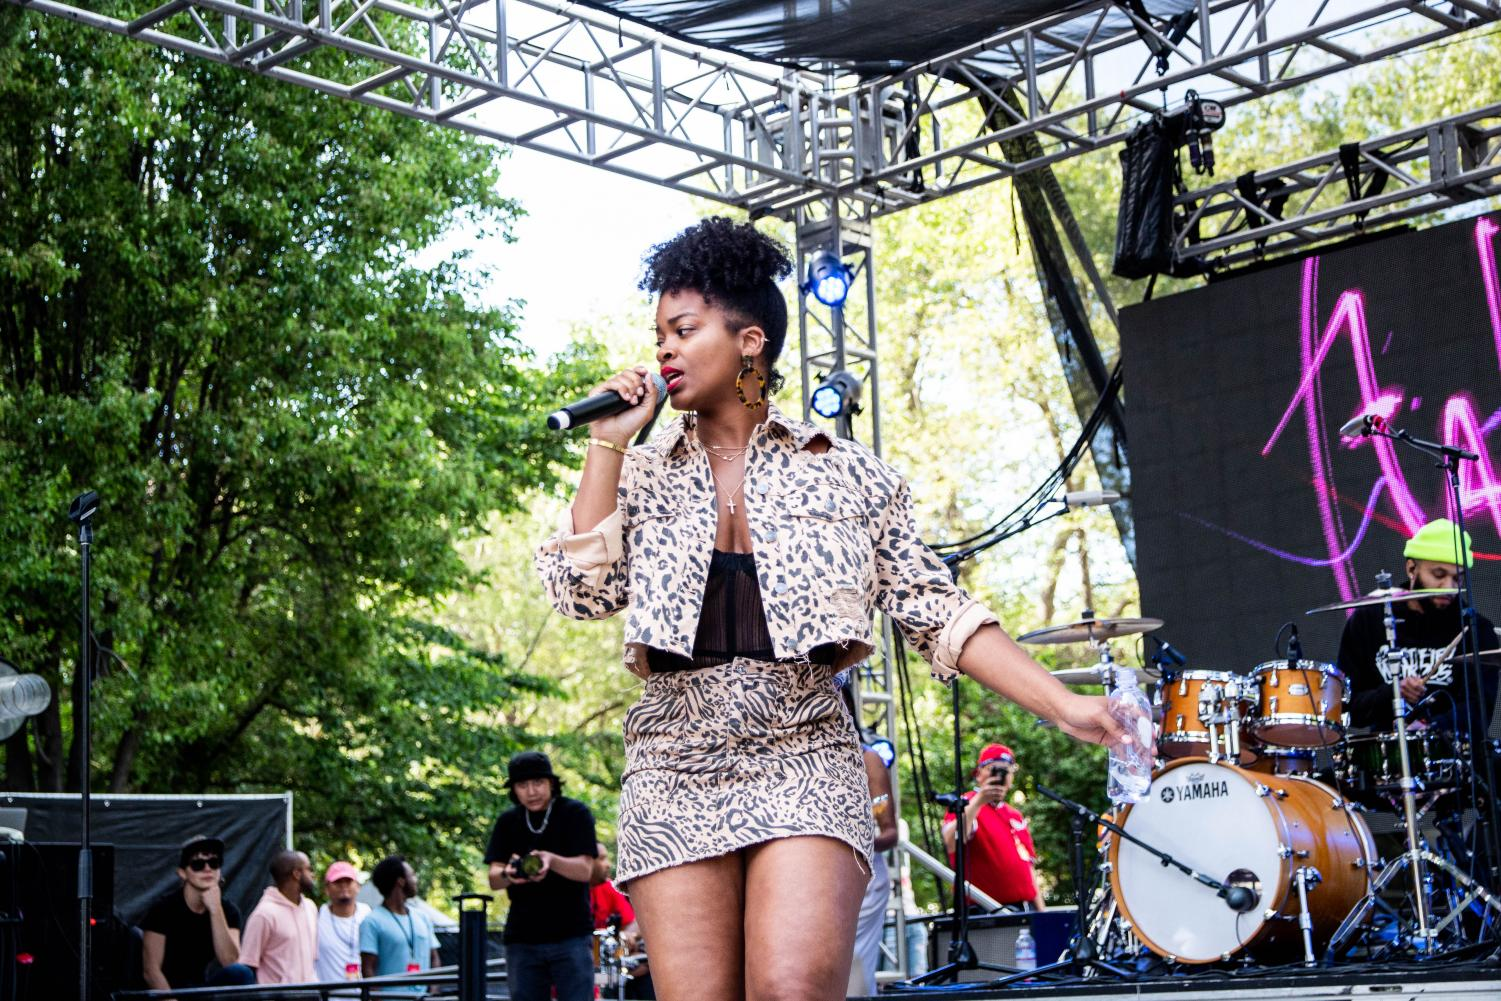 Ari Lennox of Dreamville Records performs on Blume Stage at Sol Blume on April 27 at the Cesar Chavez Plaza. Lennox sang her popular song 'Shea Butter Baby.'